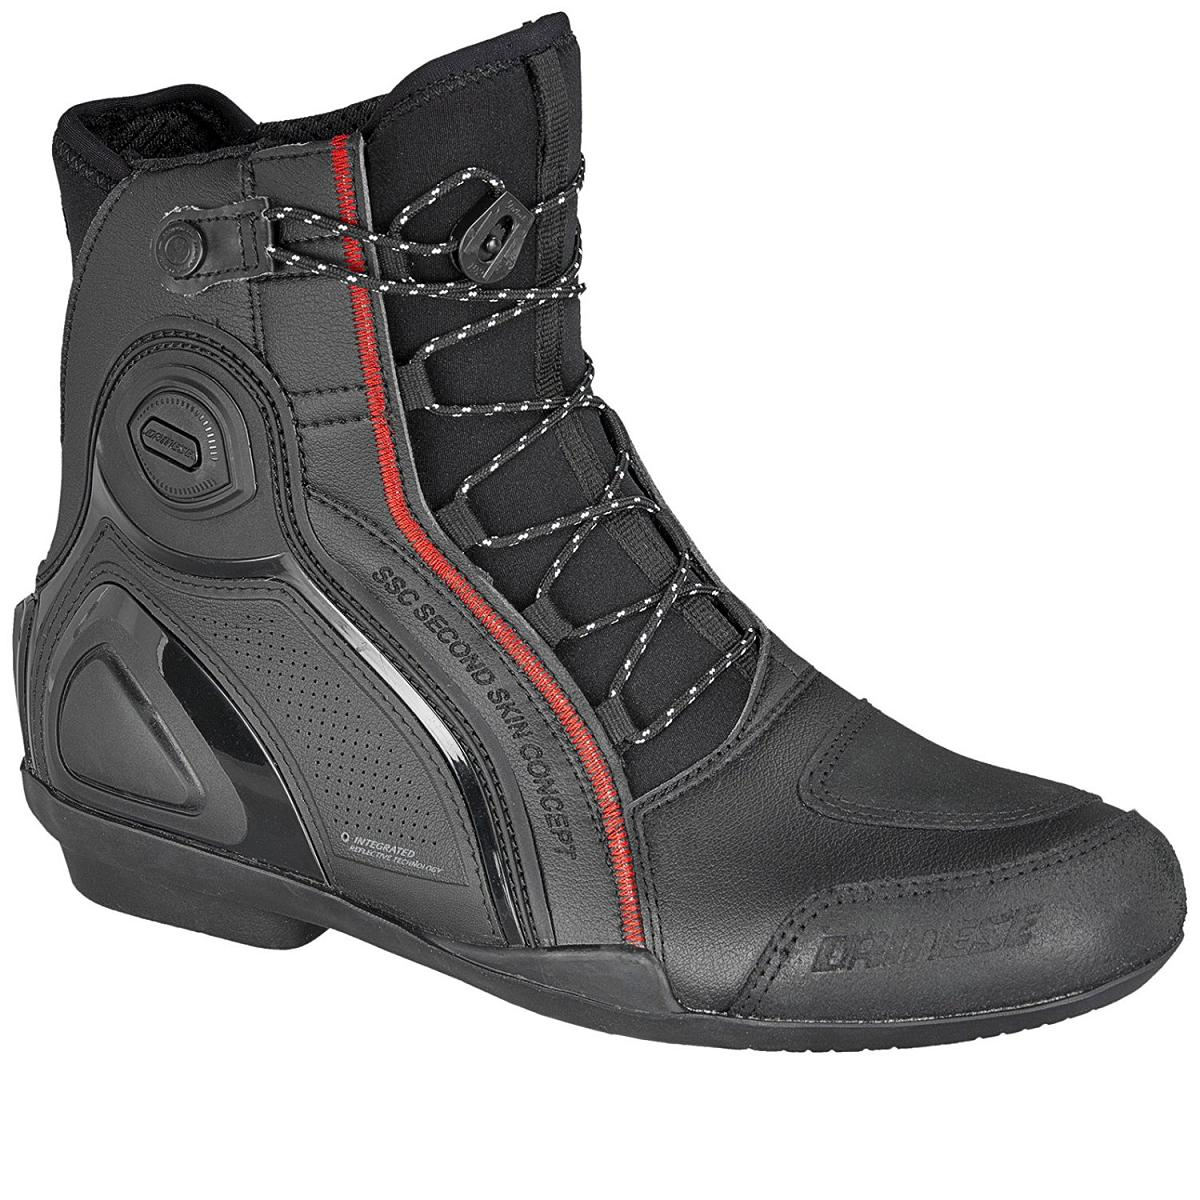 Get it delivered to your door - DAINESE SSC ALPHA D-WP C2B HALF BOOT - 3385 (EGP)